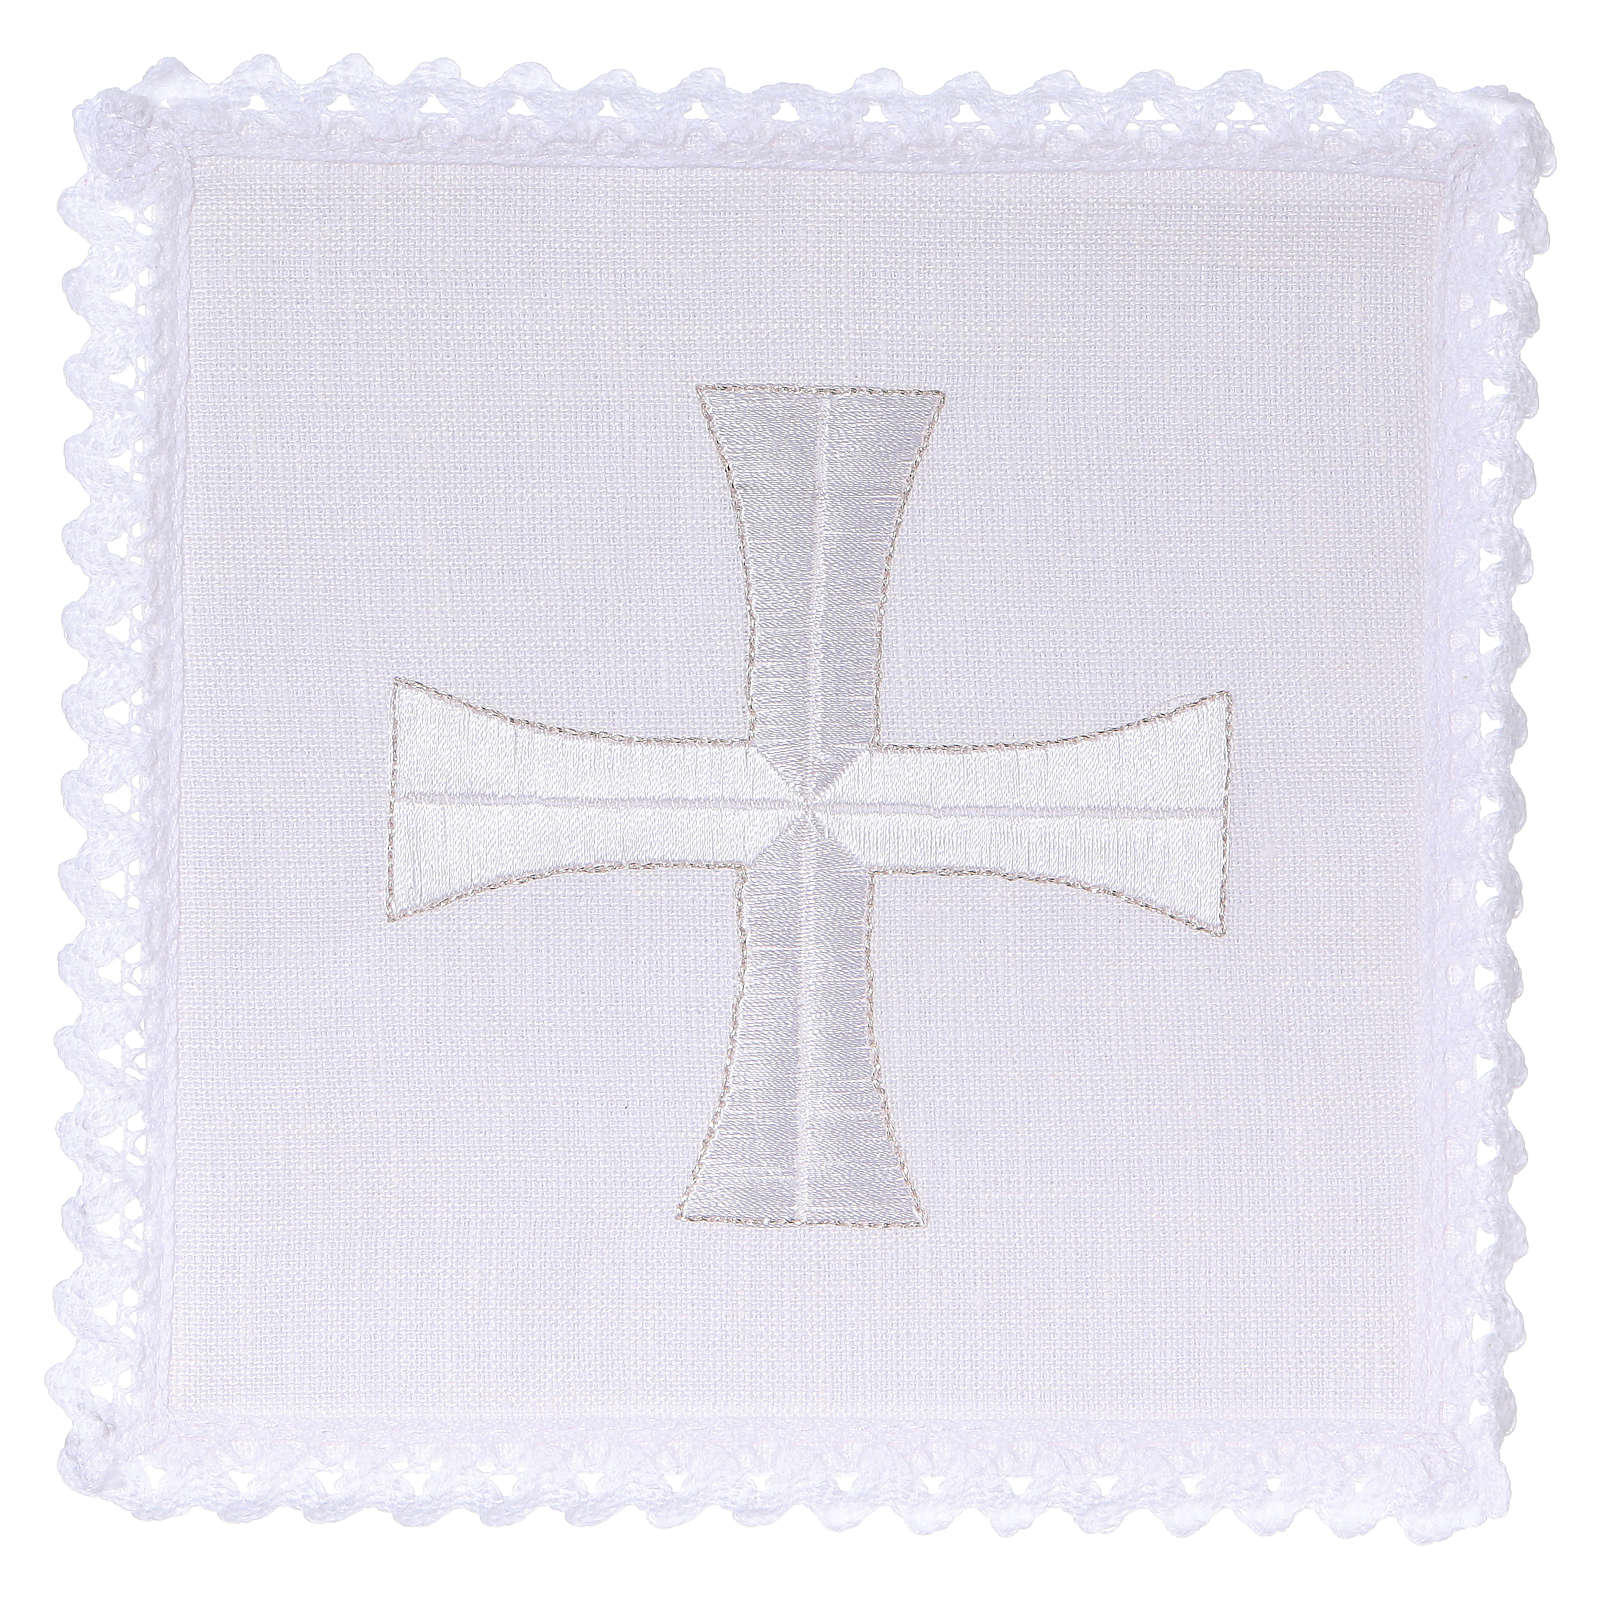 Altar cloth set white & silver cross, embroided 4